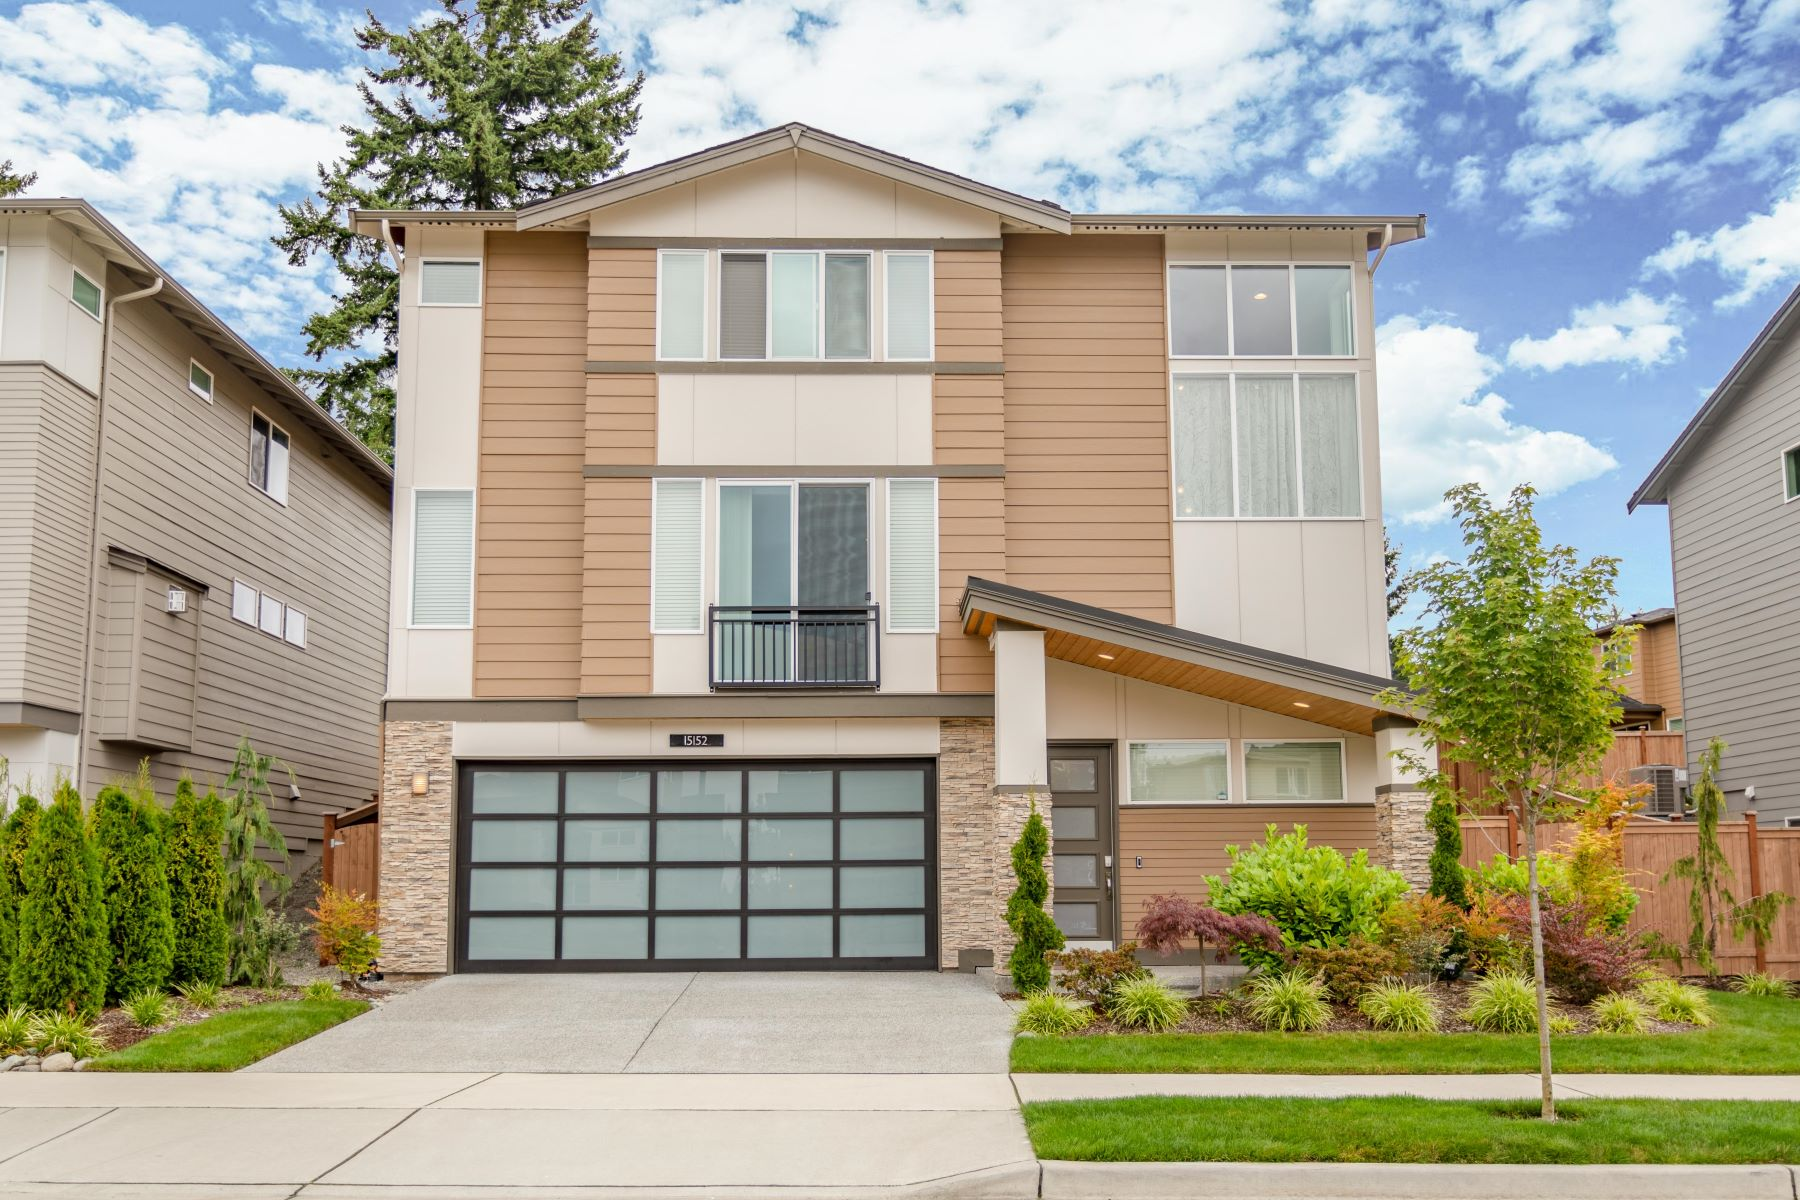 Single Family Homes for Sale at Vinterra Highlands 15152 127th Place NE Woodinville, Washington 98072 United States